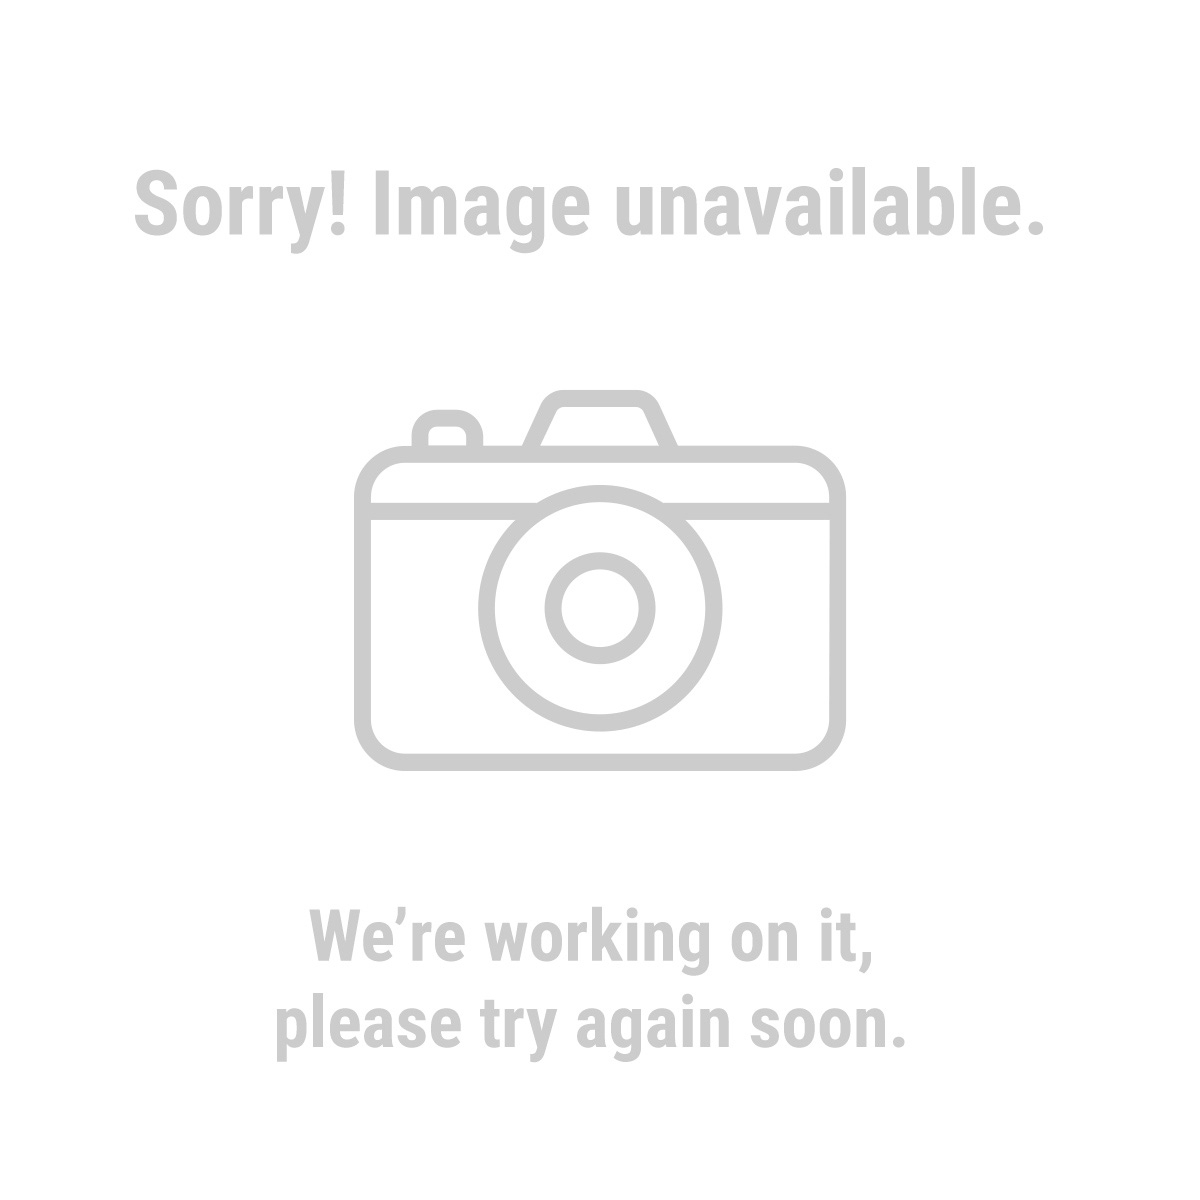 "U.S. General Pro 69387 Roller Cabinet, 44"", 13 Drawer, Gloss Red Industrial Quality"